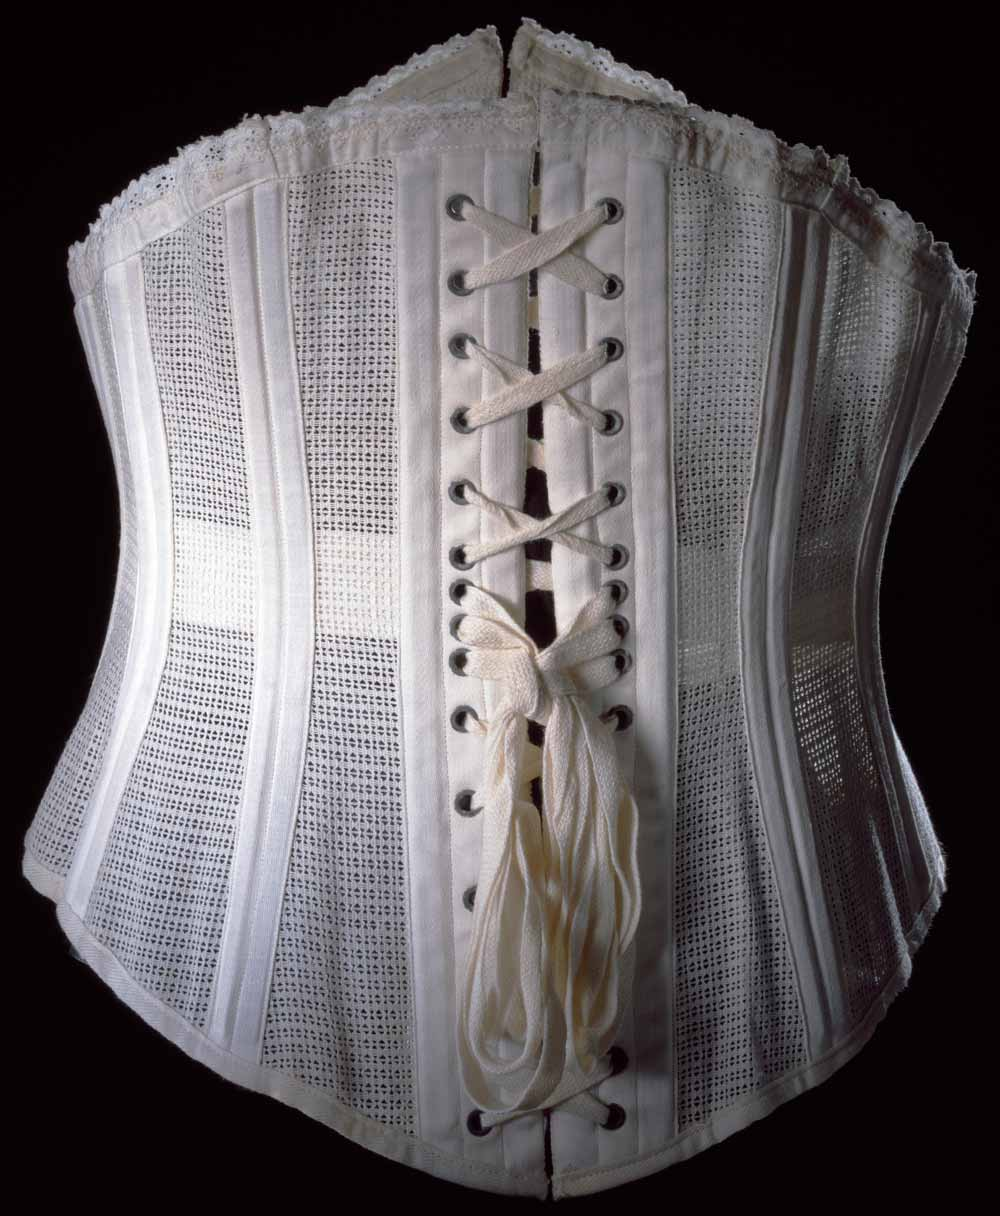 17779e8476 Corsets and Bustles from 1880-90 - the Move from Over-Structured ...